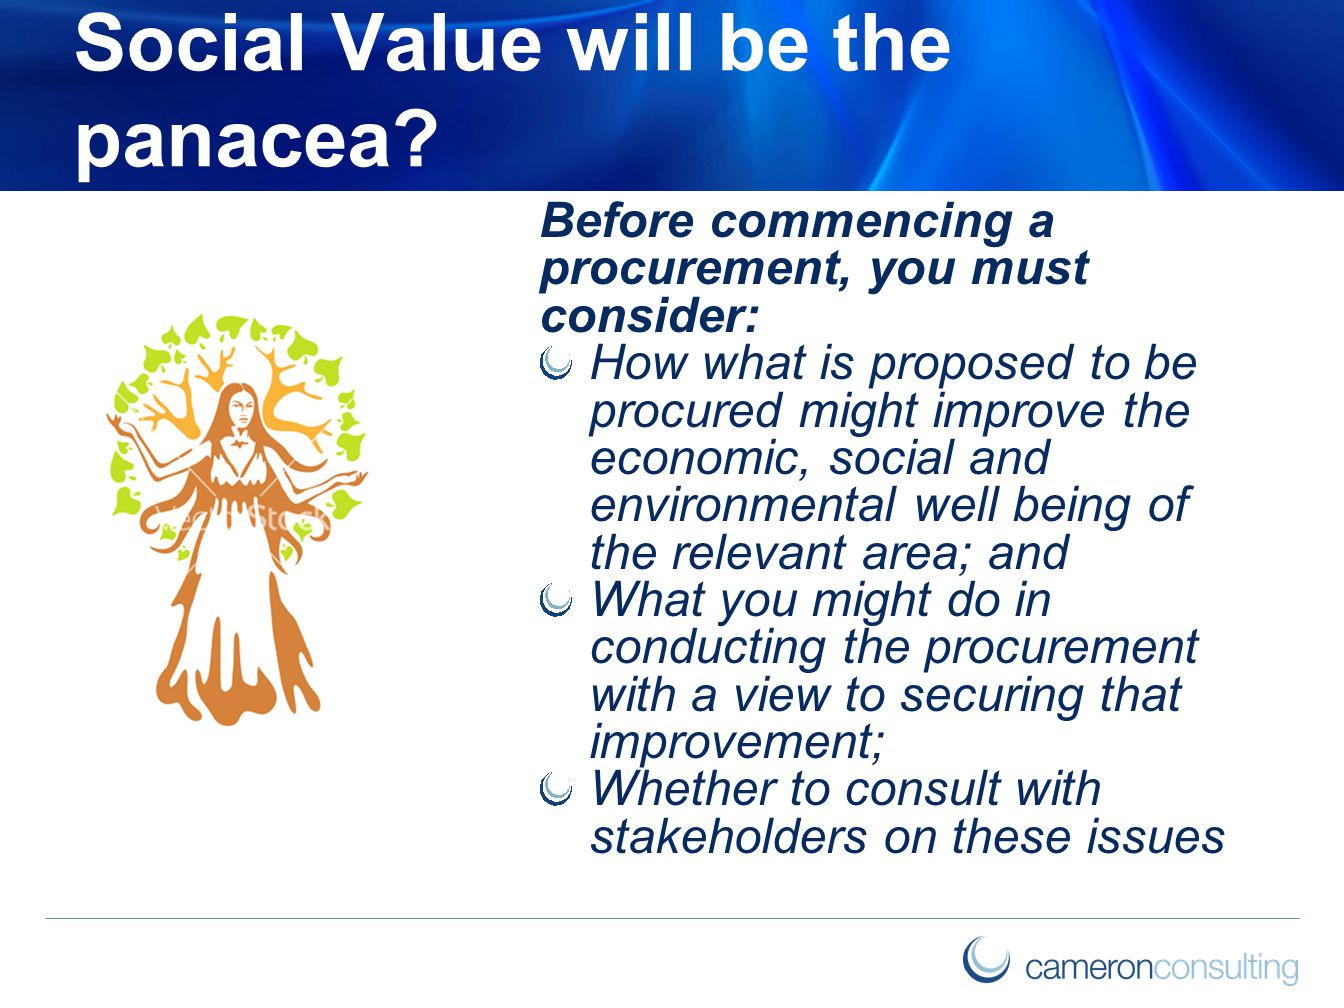 Social Value will be the panacea? Before commencing a procurement, you must consider: How what is proposed to be procured might improve the economic,